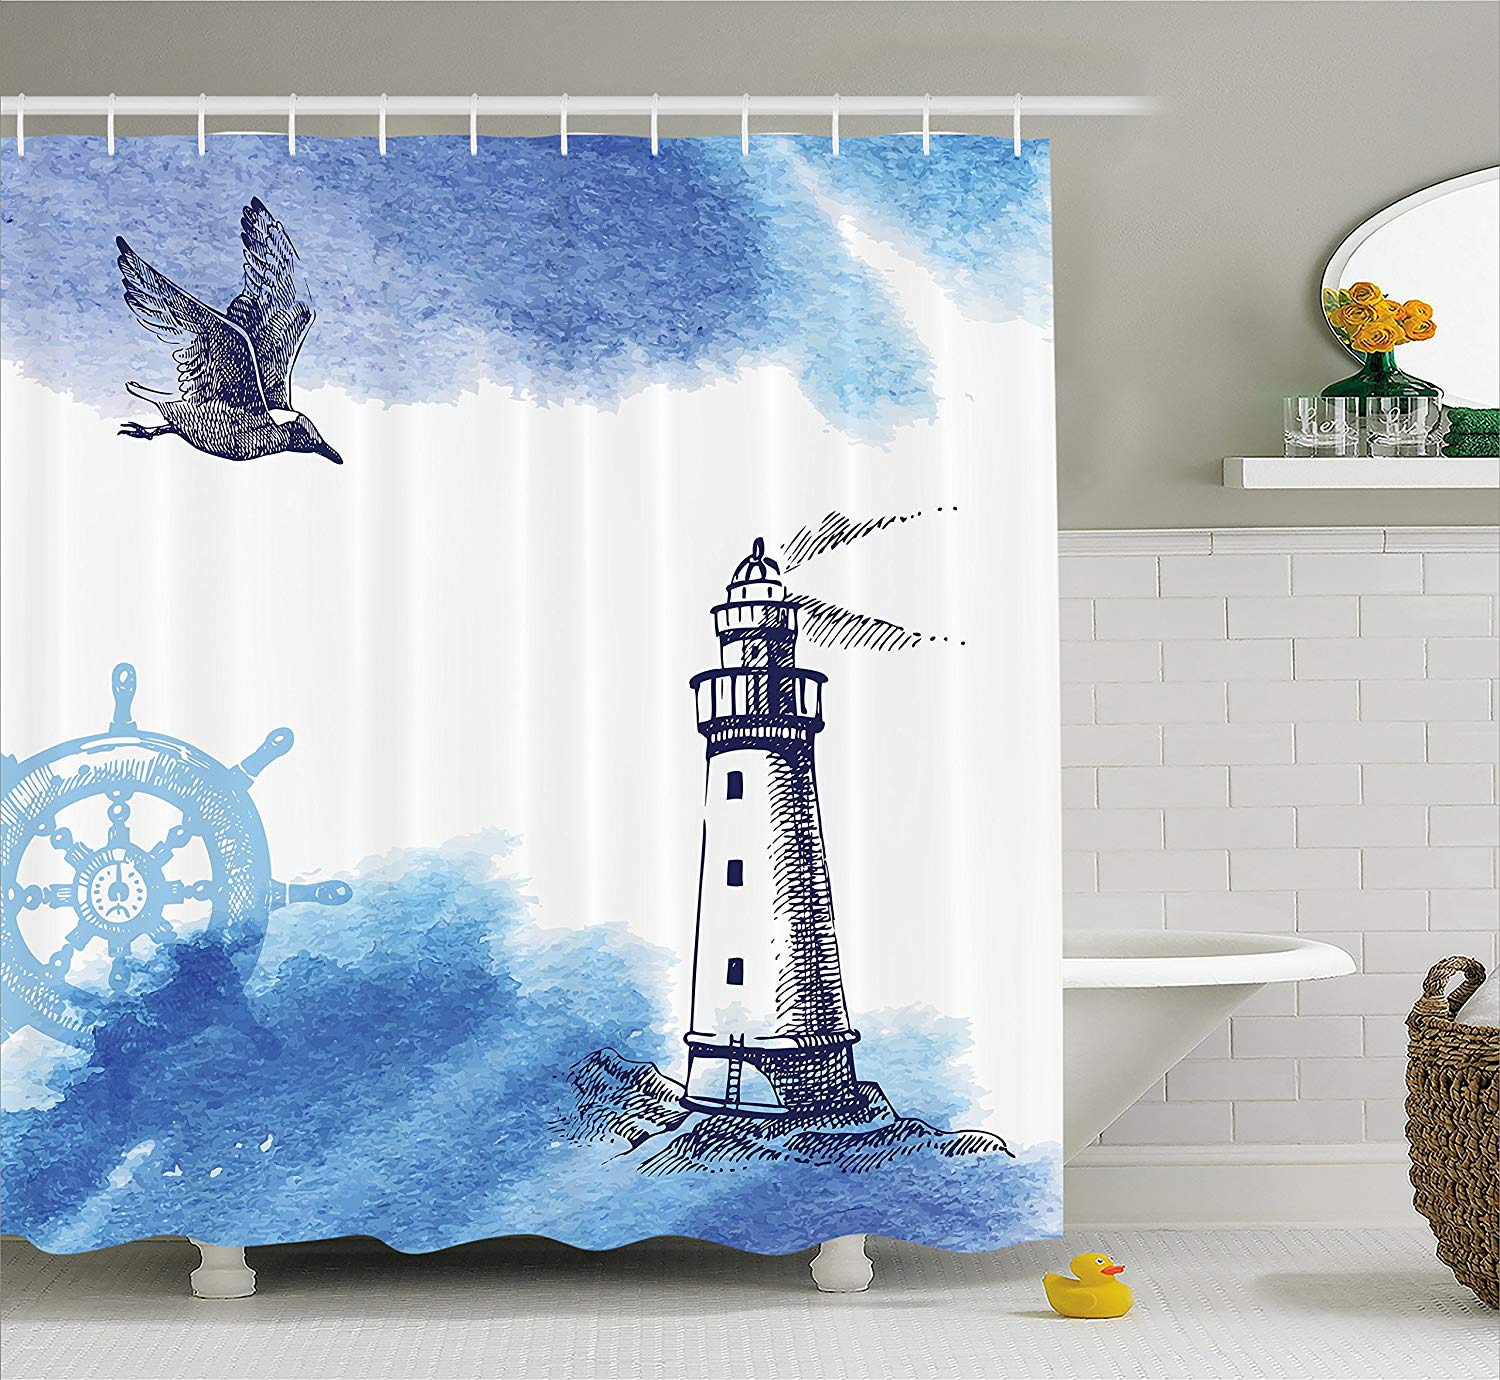 Us 18 28 Farm House Decor Shower Curtain Nostalgic Watercolors With Gull Ancient Anchor Lighthouse Nautical Theme Fabric Bathroom Decor In Shower